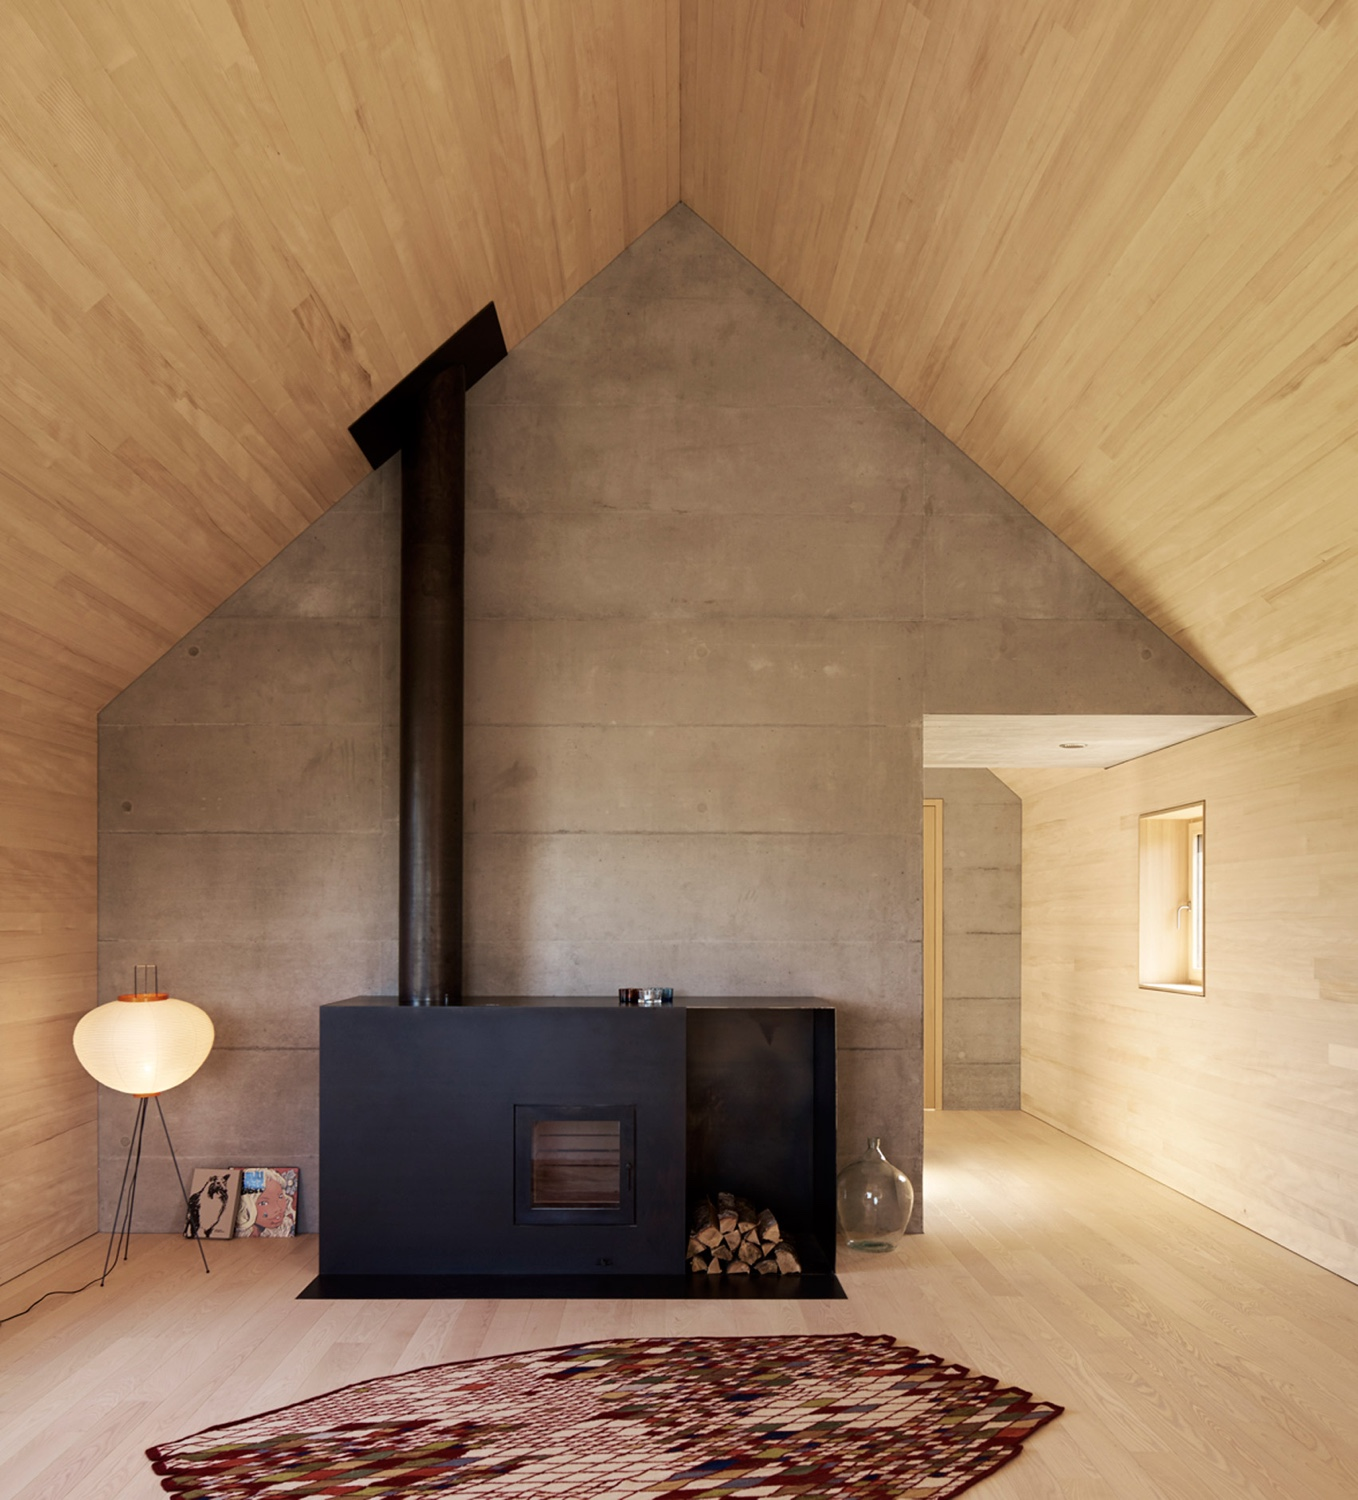 A cosy wood burning stove in an Austrian home designed by Bernardo Bader Architekten. Photo by Adolf Bereuter via Dezeen.